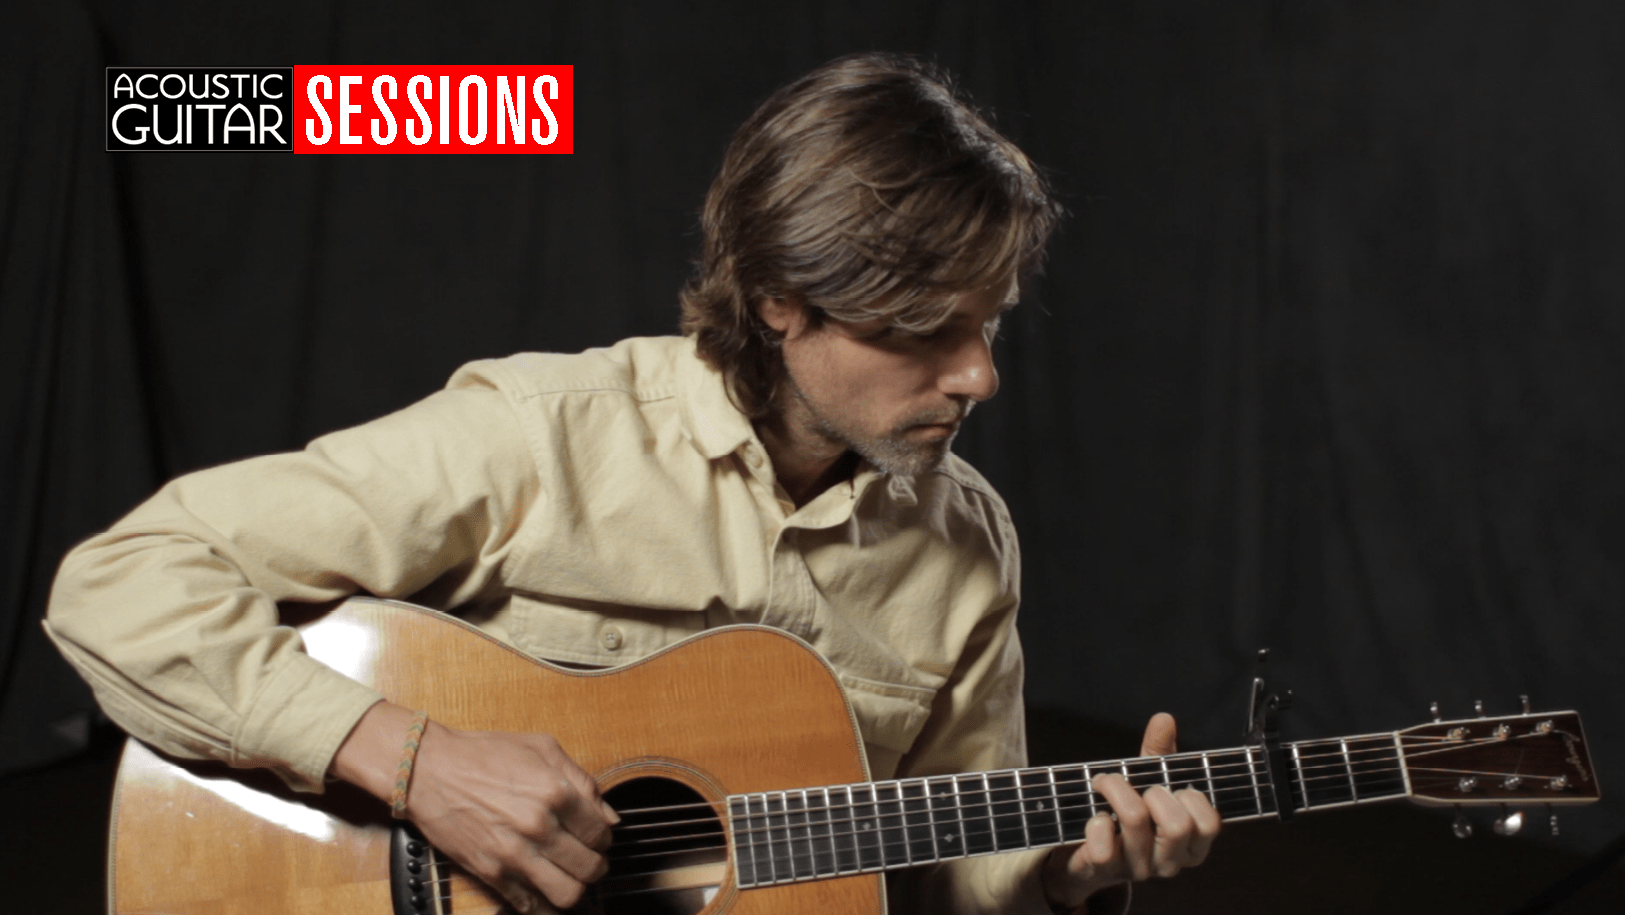 Acoustic Guitar Sessions Presents Nathan Salsburg